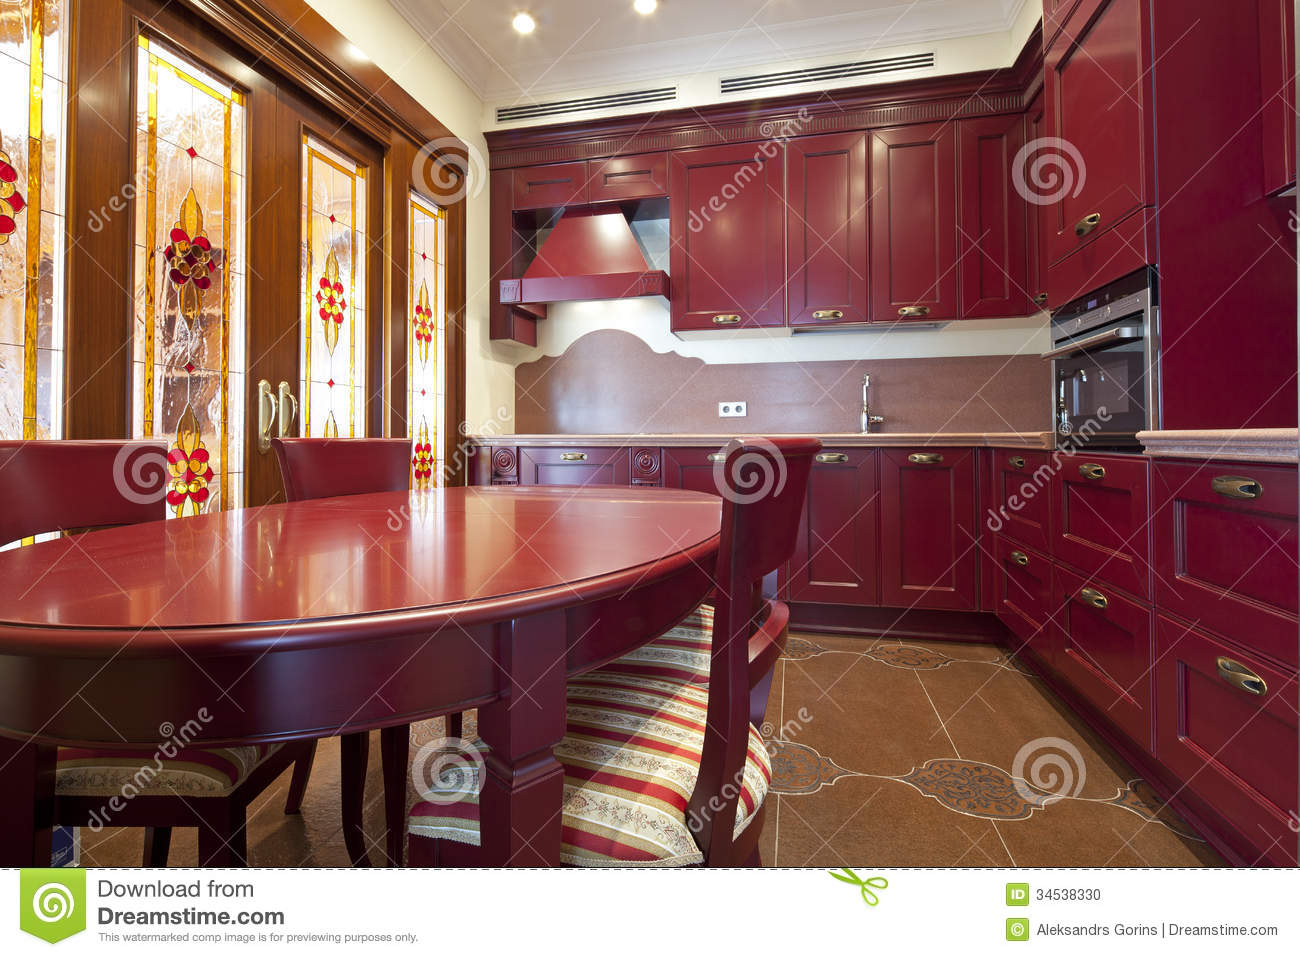 Kitchen Stock Photo - Image: 34538330